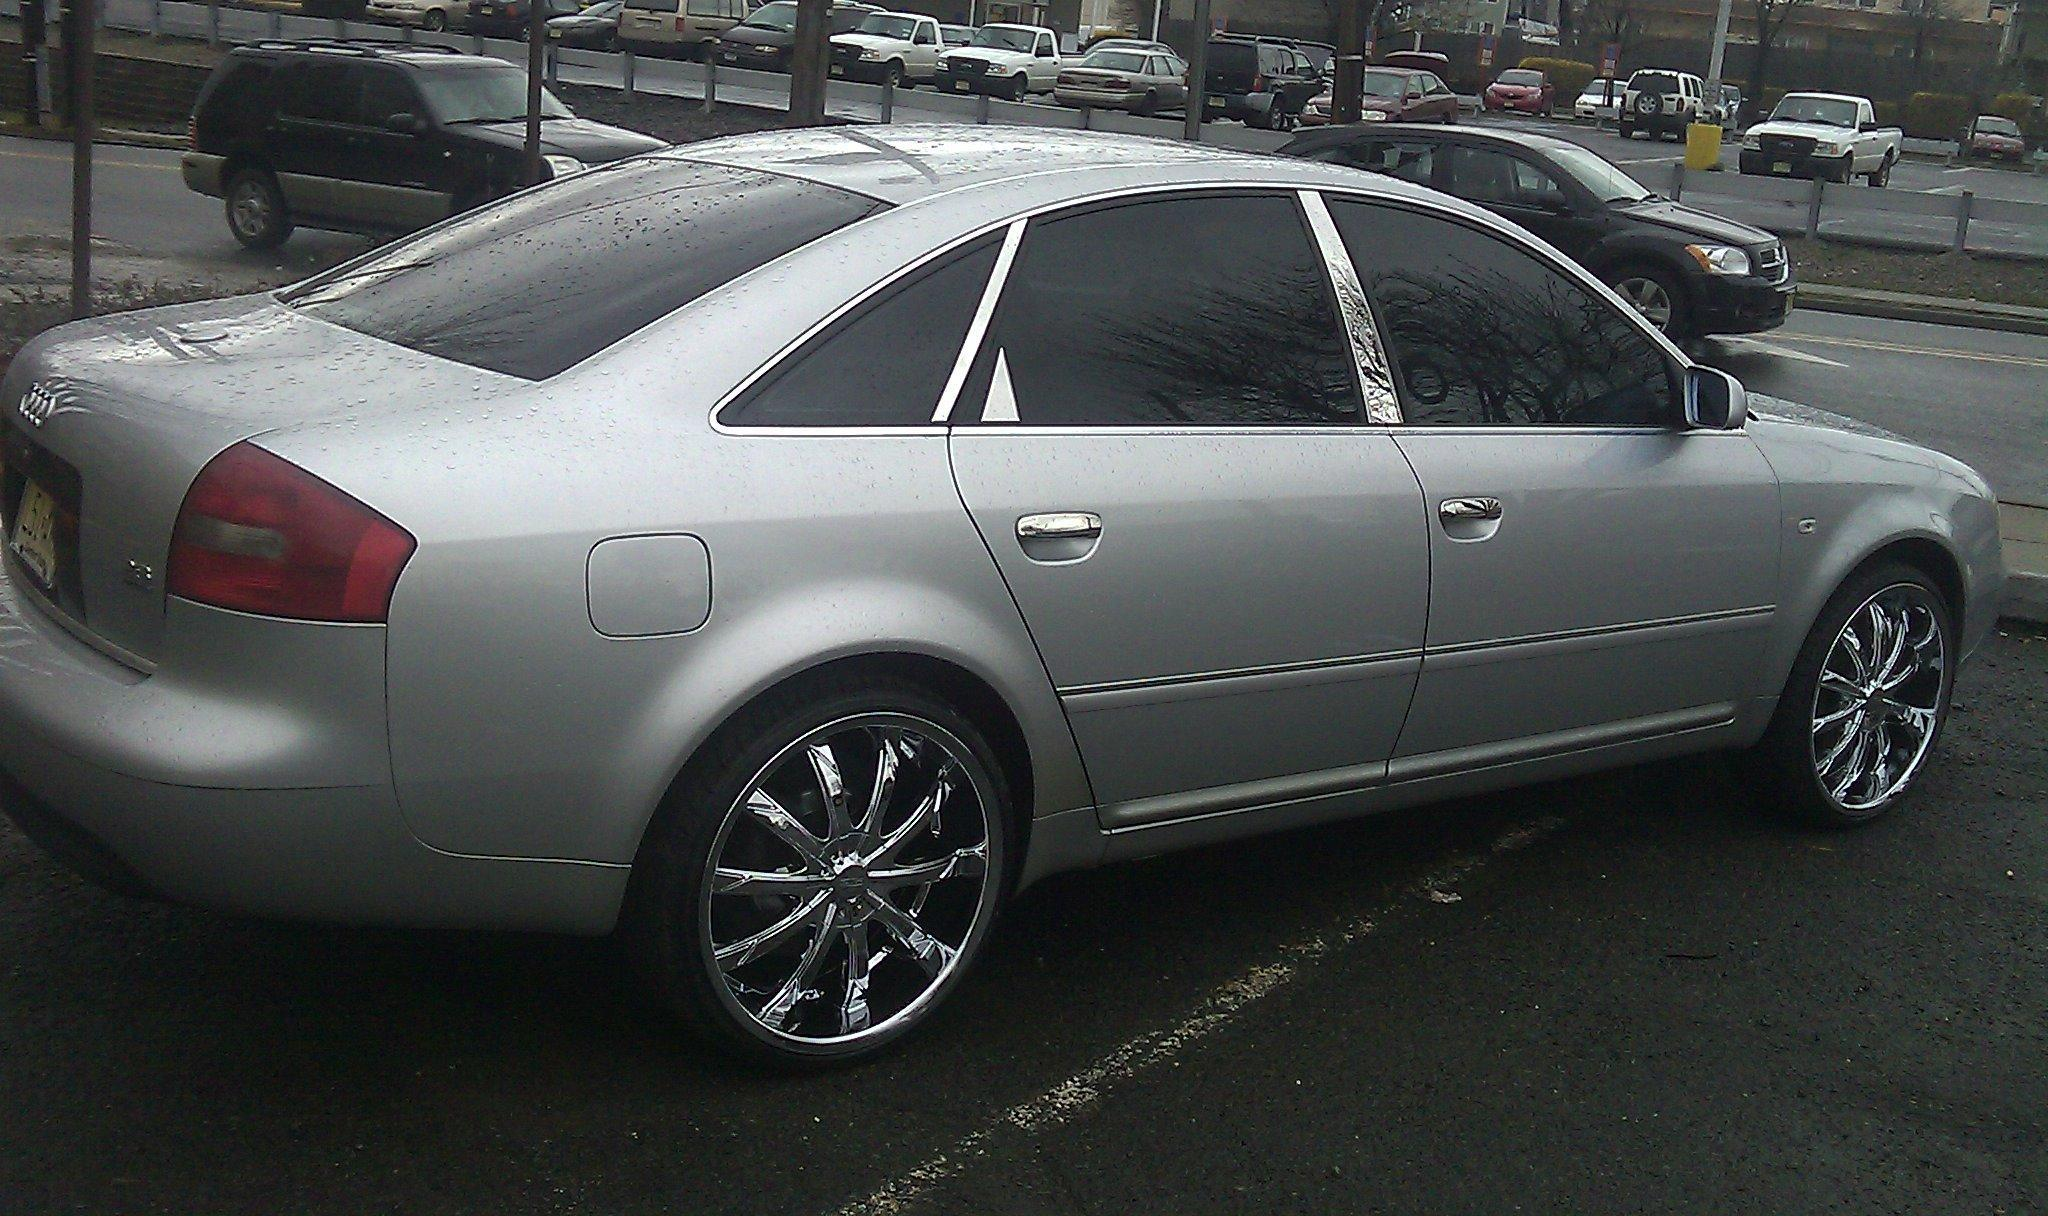 cmorecake 2001 audi a62 7t sedan 4d specs photos modification info at cardomain. Black Bedroom Furniture Sets. Home Design Ideas